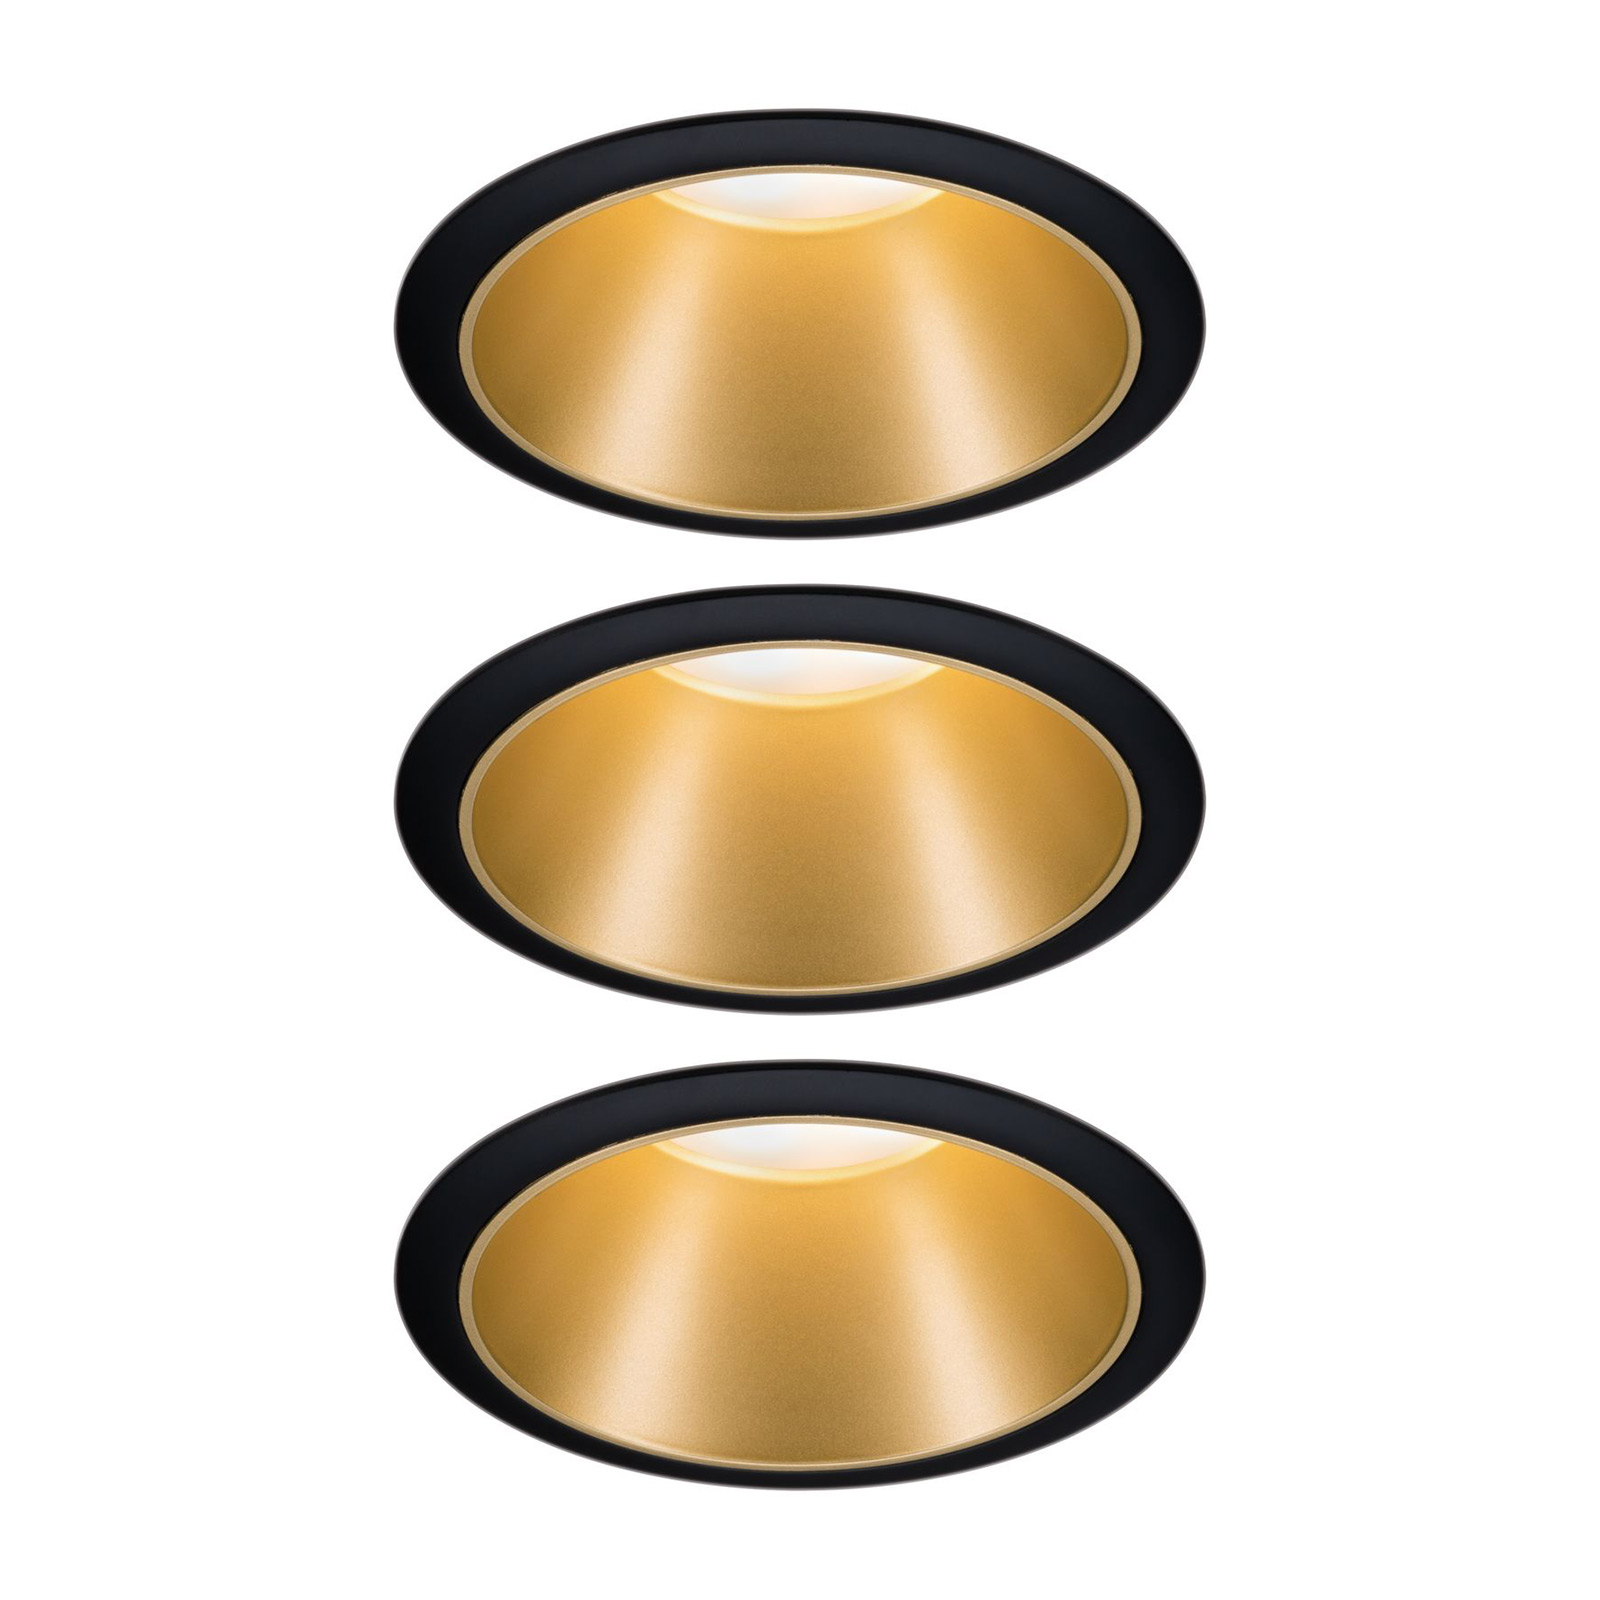 Paulmann Cole spot LED, doré-noir, lot de 3